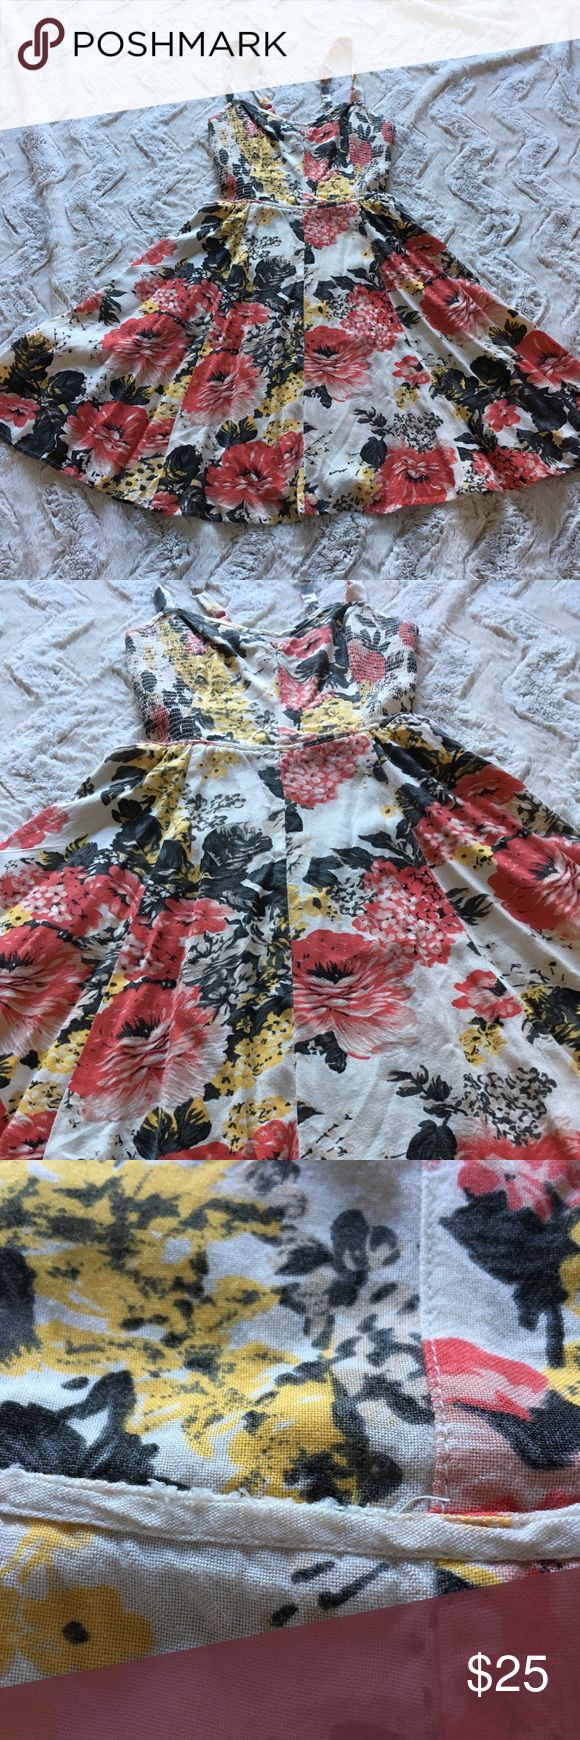 Kimchi Bleu floral mini sun dress with pockets Super cute!!! Perfect for spring.  Dress with pockets. Some wear on waist trim as pictured. Feel free to message me with any questions you have. Kimchi Blue Dresses Mini